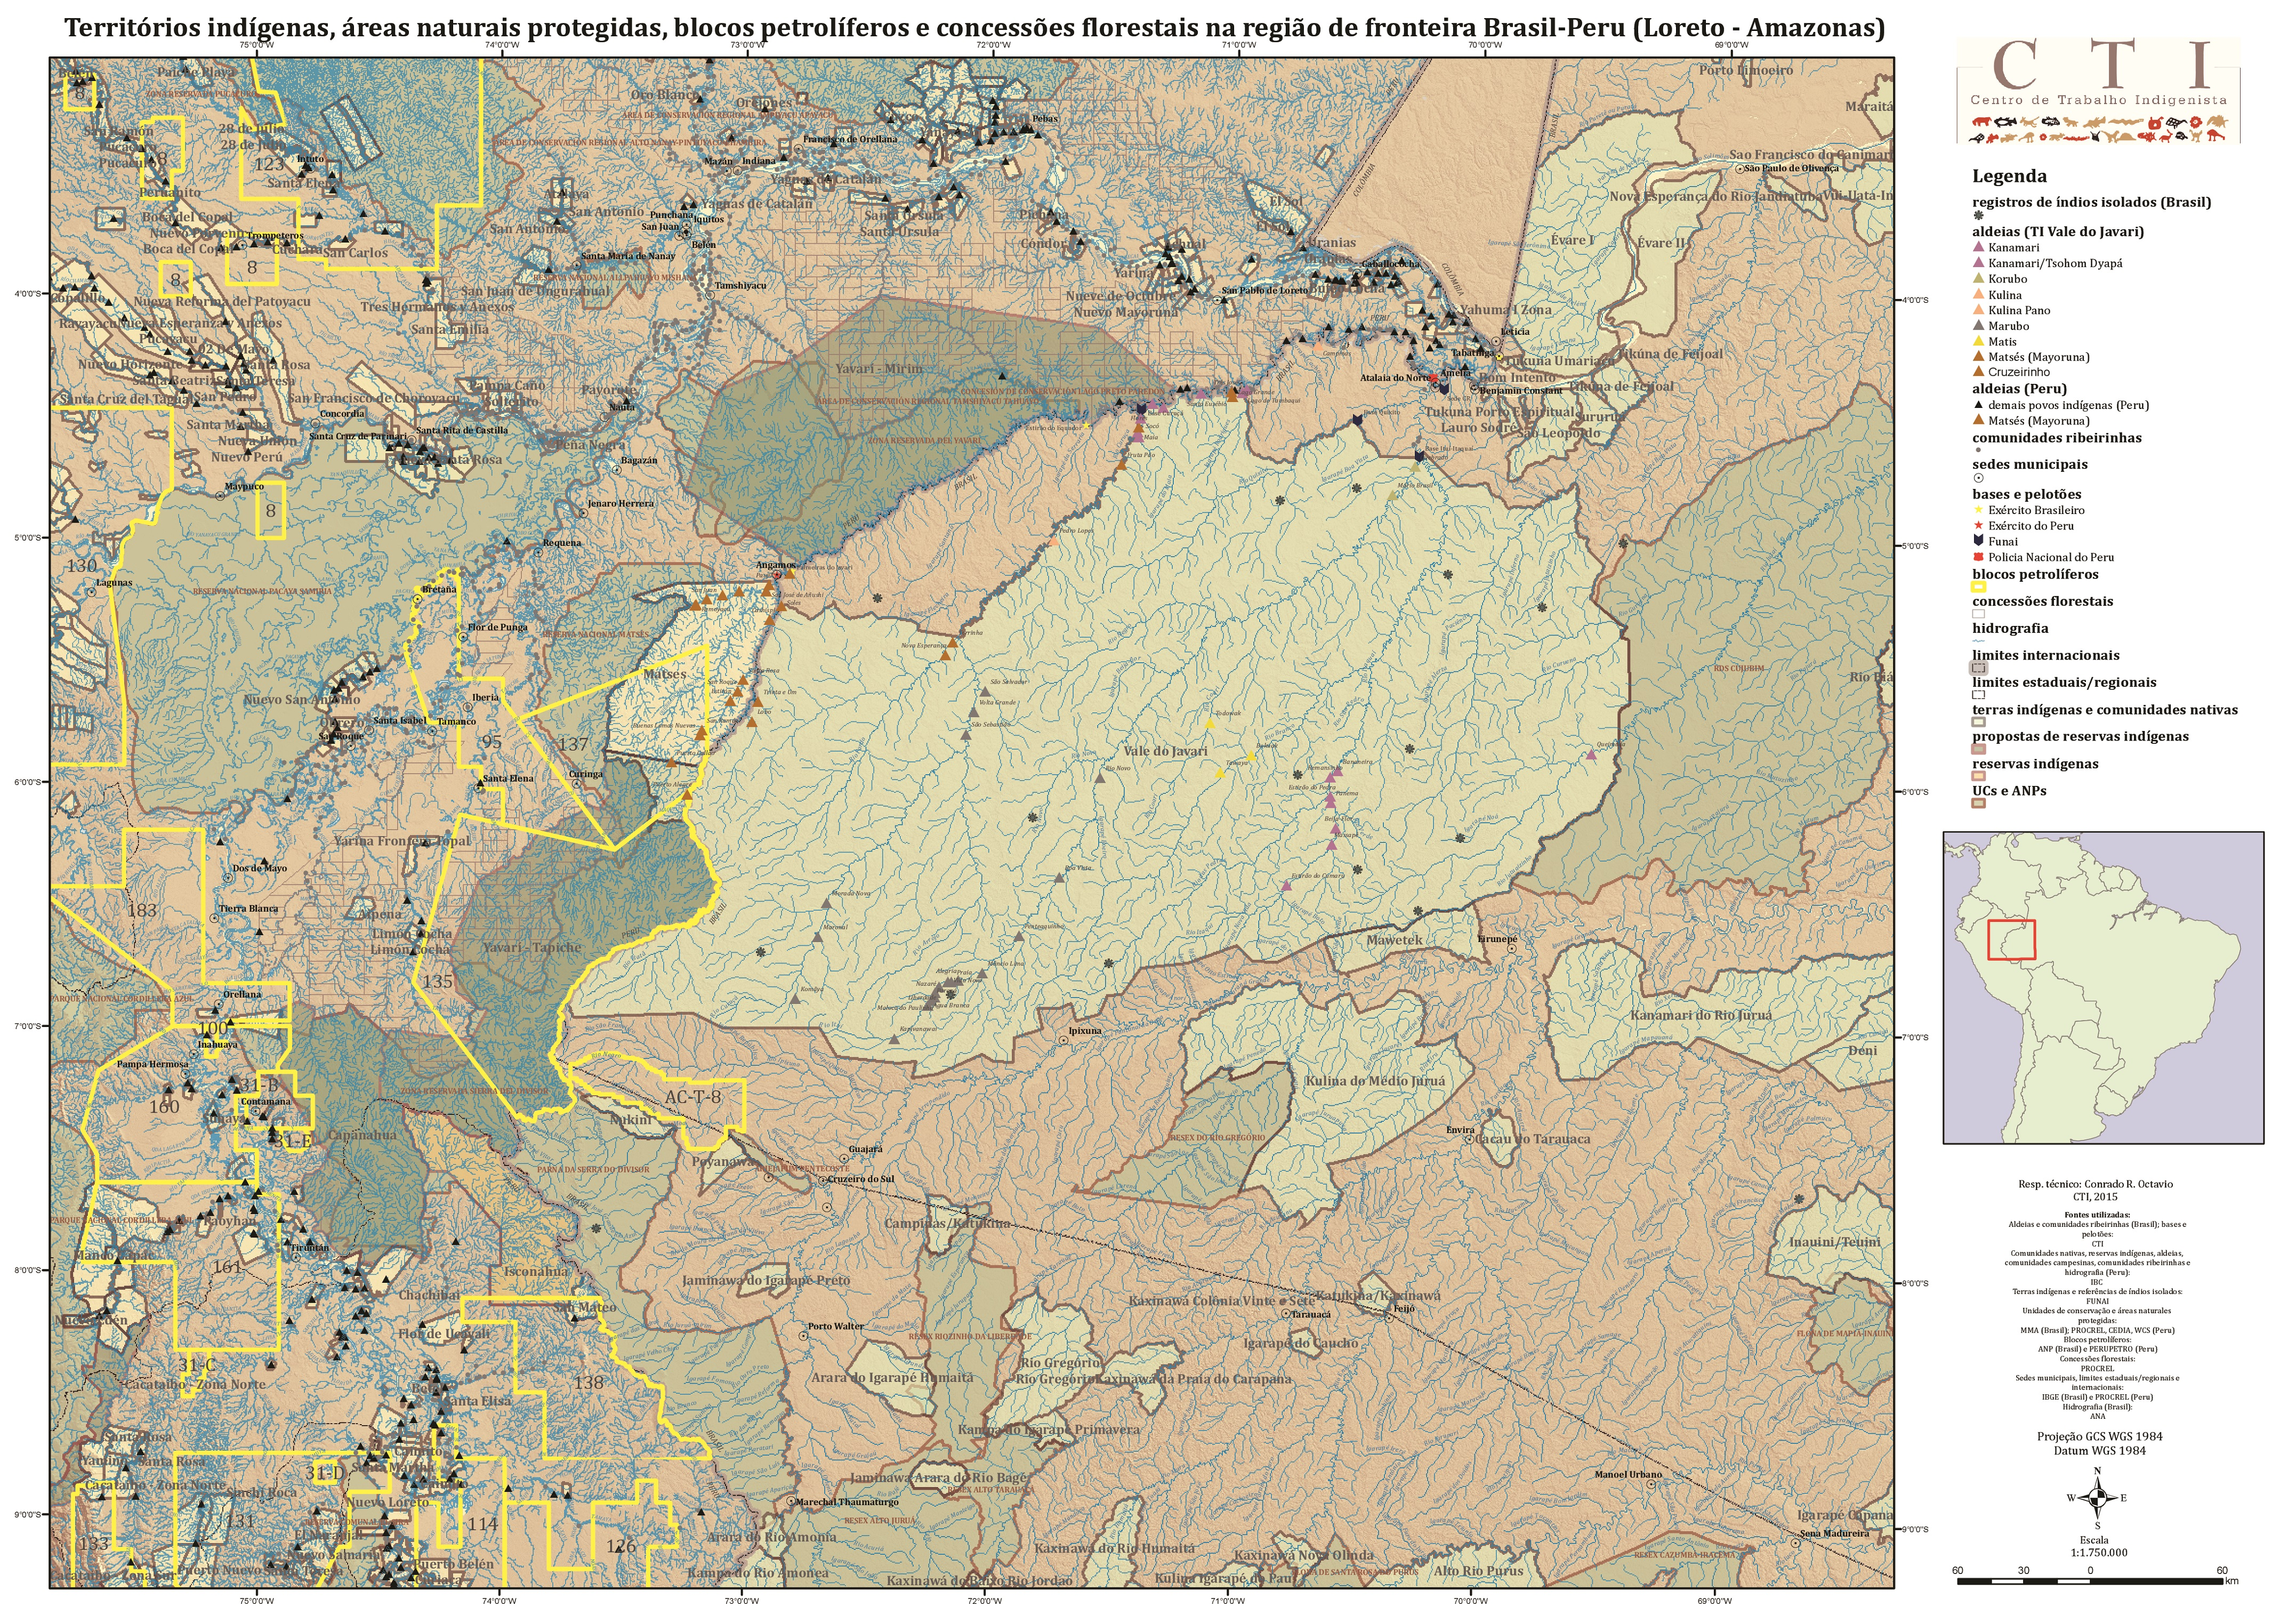 2015_02_25-CTI-Mapa_area_focal-media-_1_menor